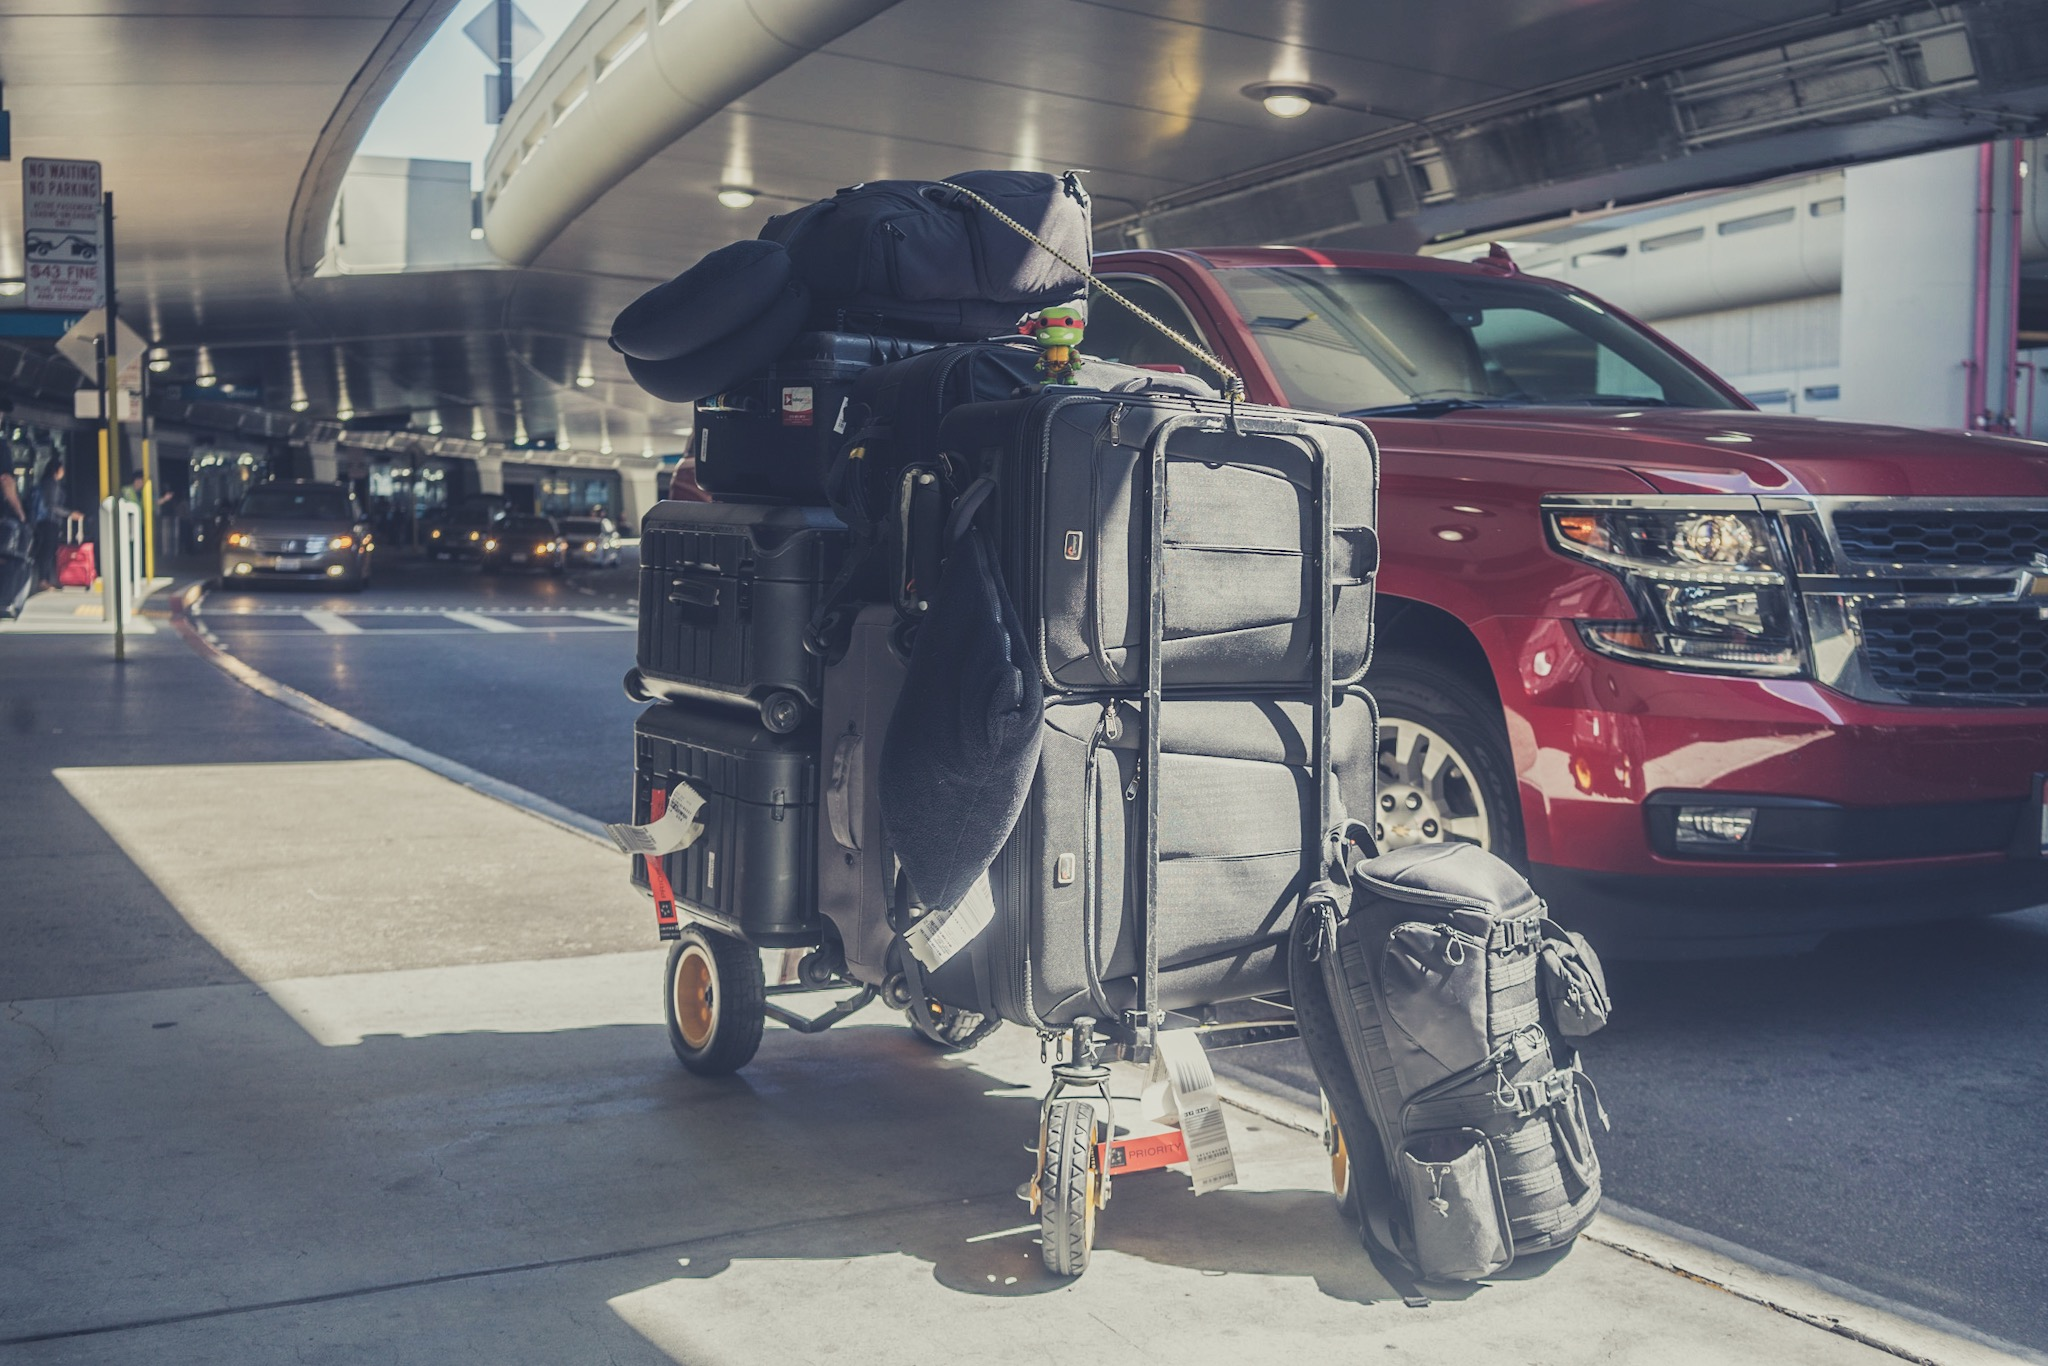 What To Do With Luggage For A Late Flight